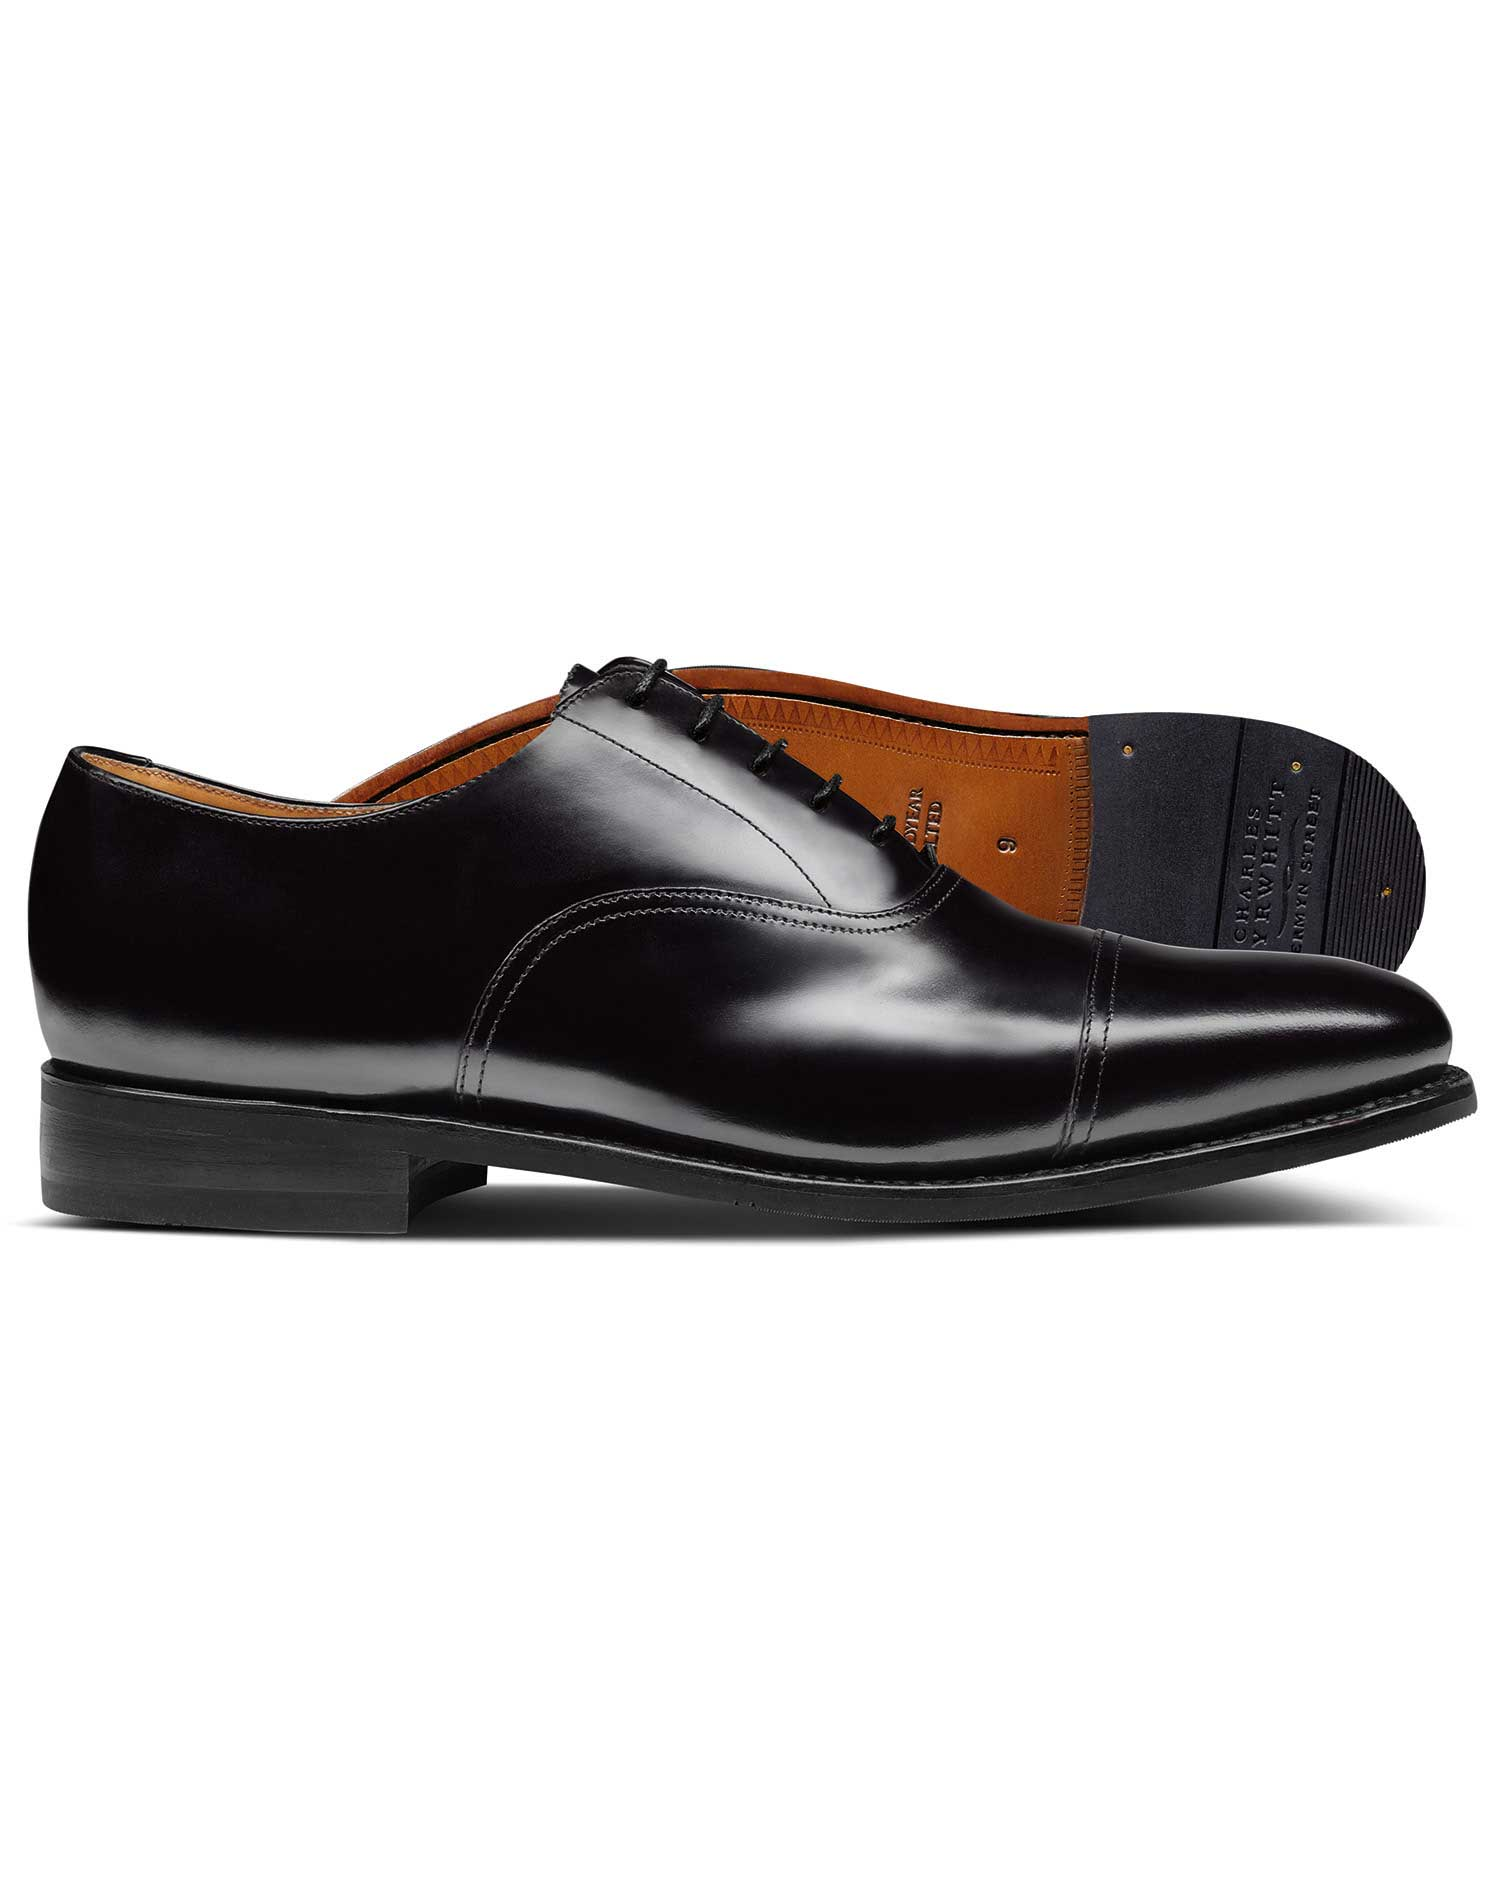 Calf Leather Black Goodyear Welted Oxford Toe Cap Shoes